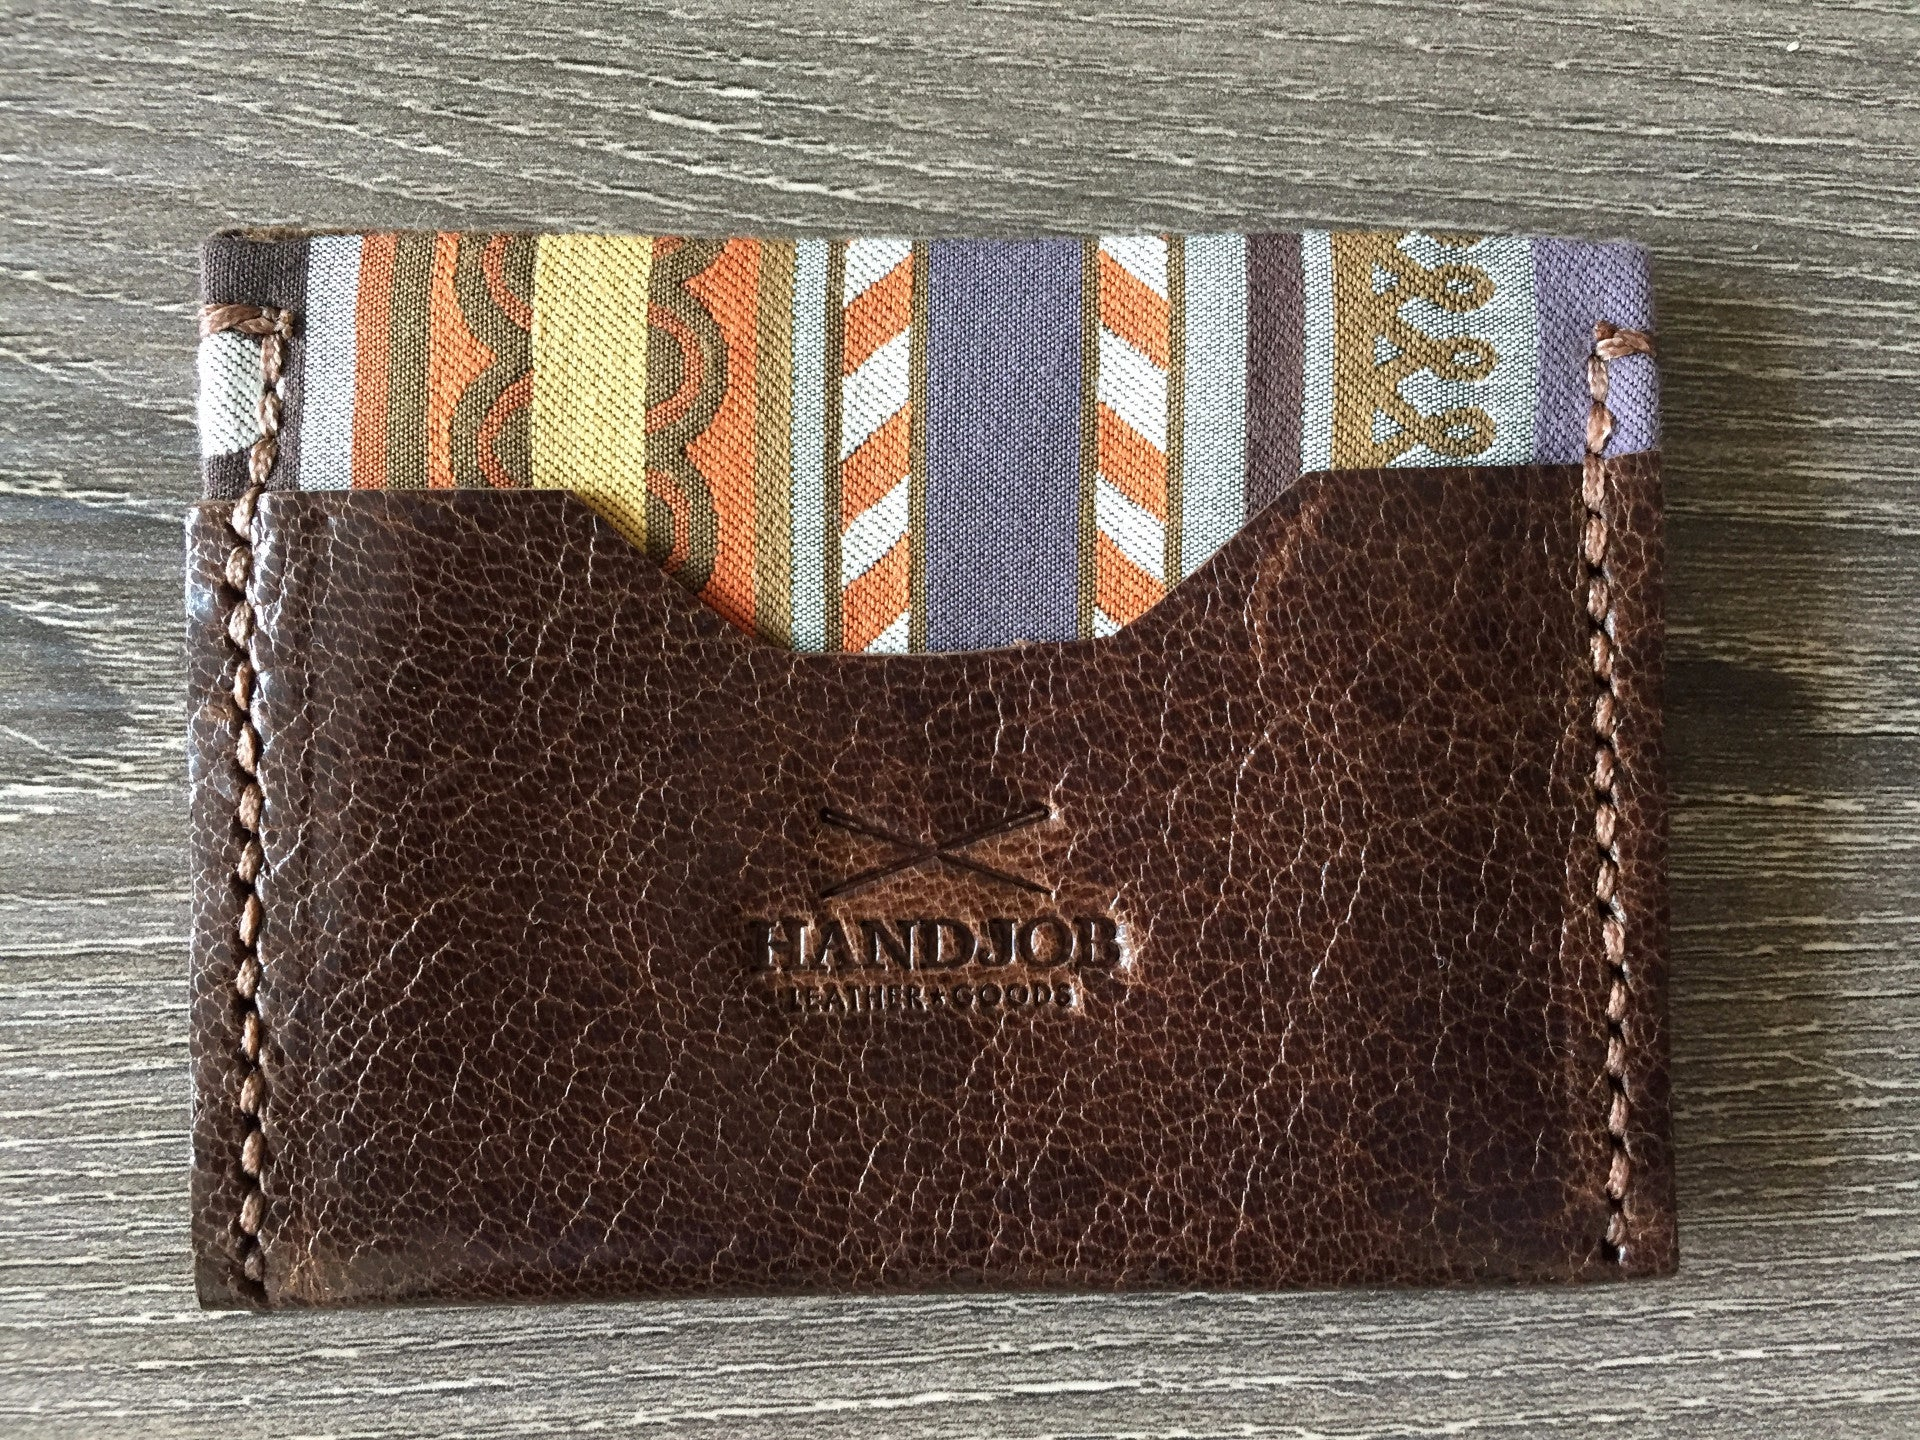 Fabric & Leather Small Wallet Princeton